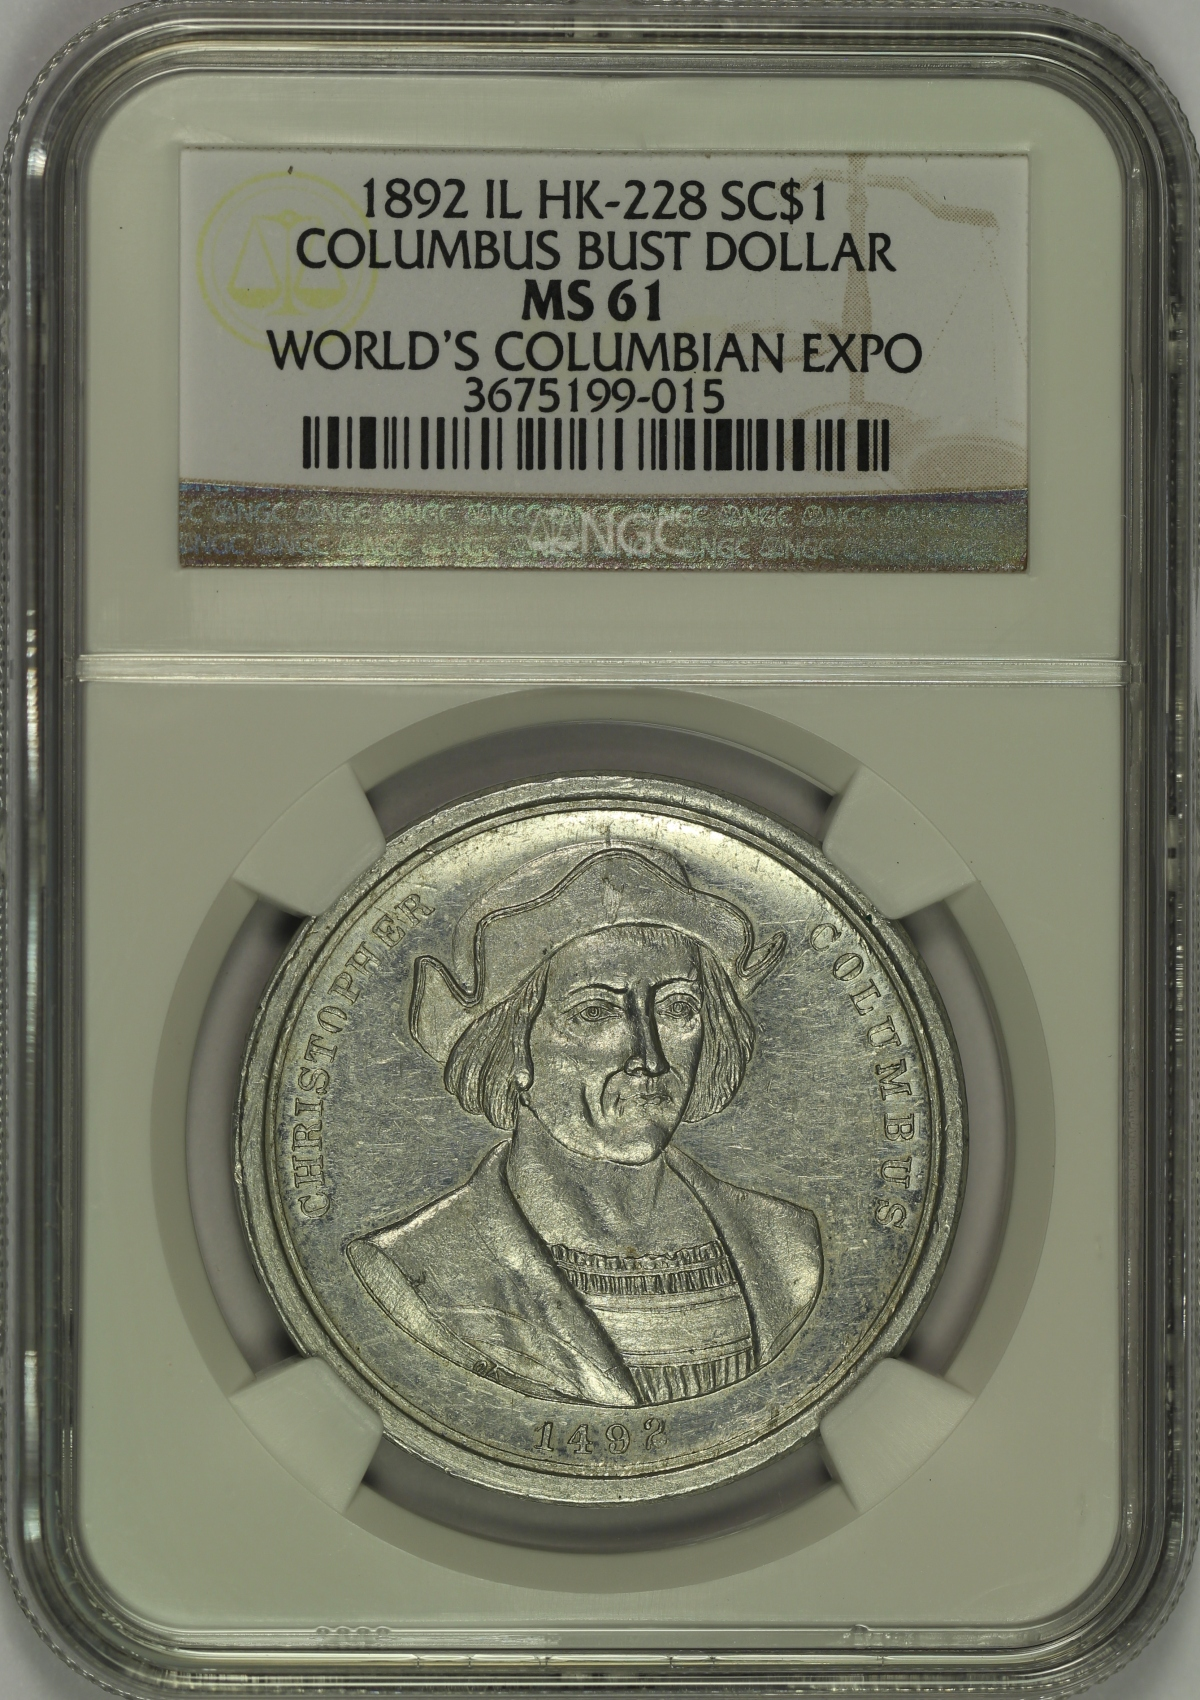 Michael Kittle Rare Coins - 1892 Columbian Expo Bust ...